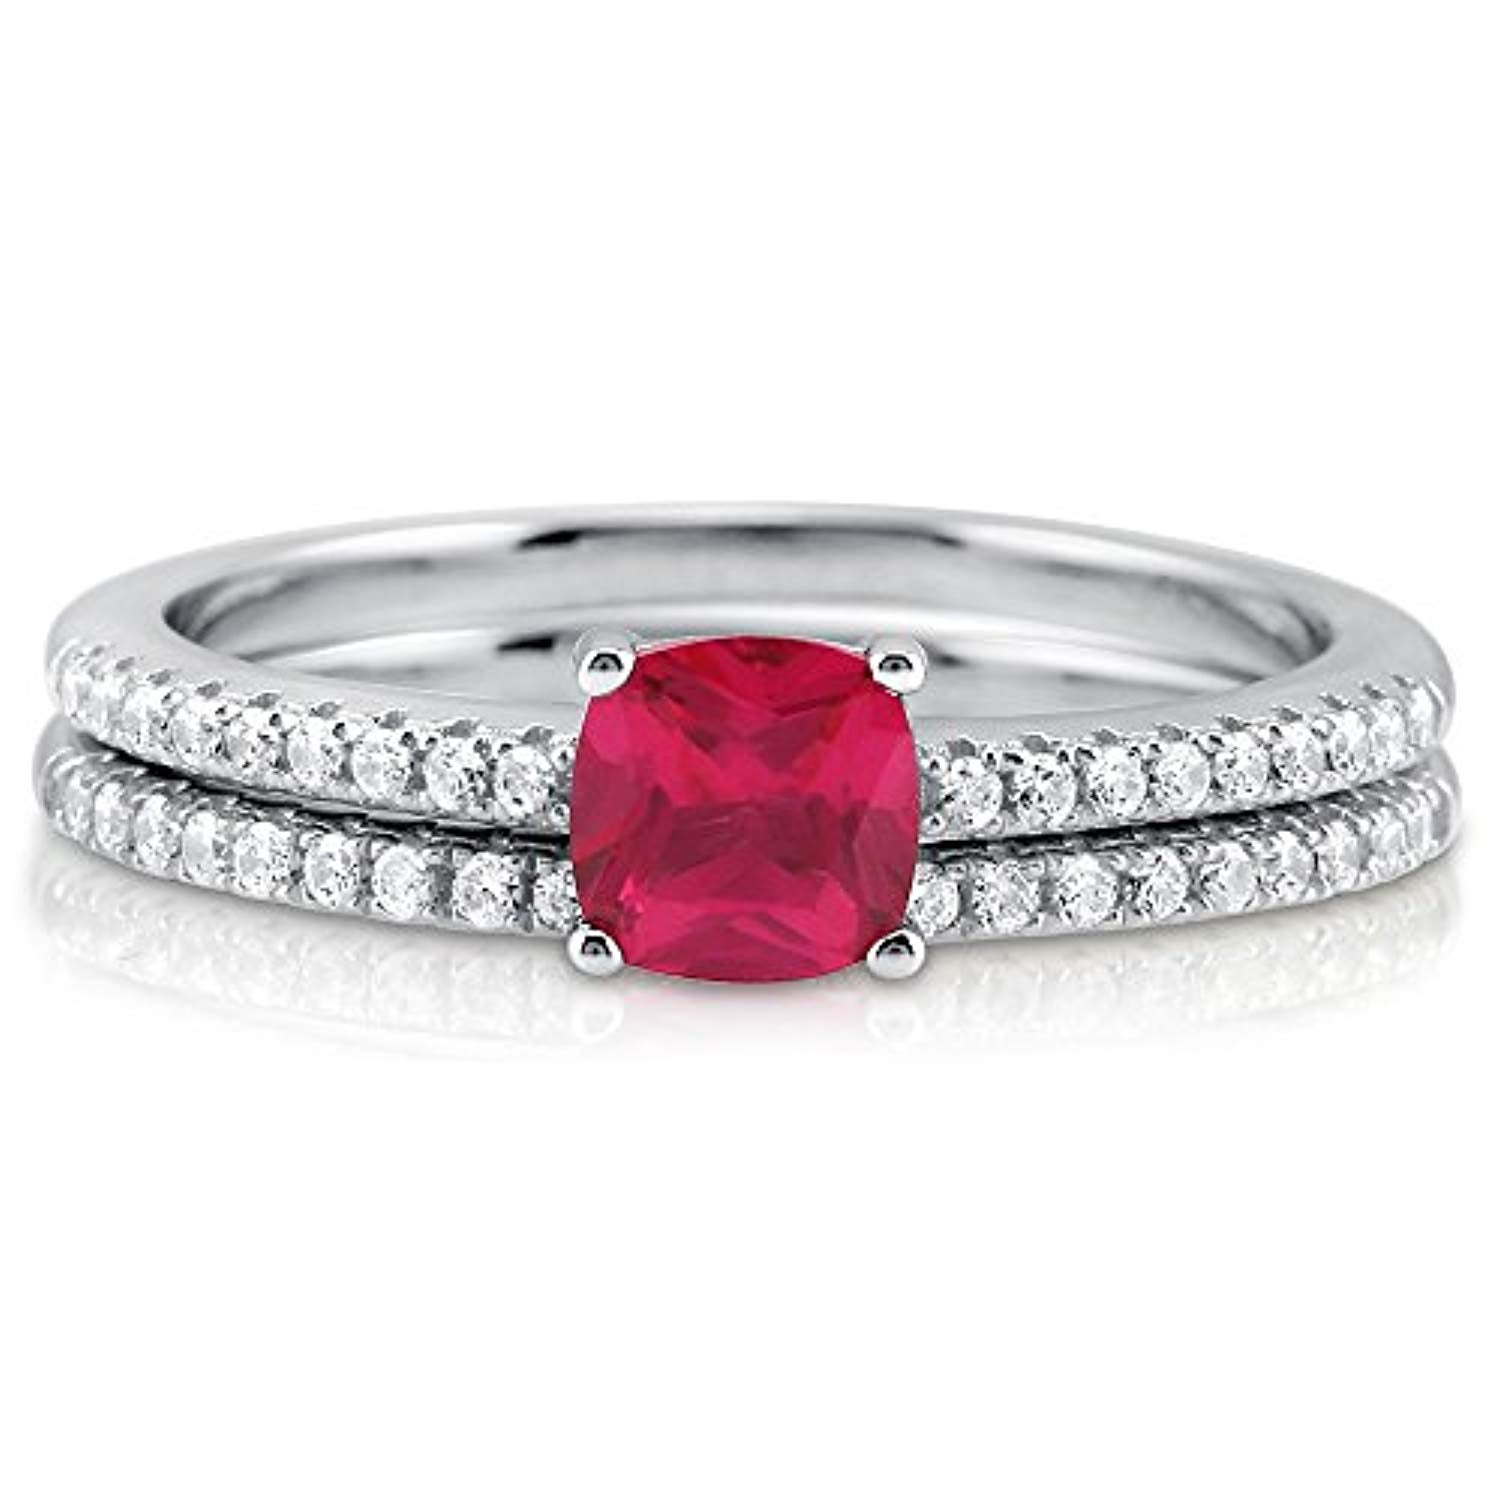 Rhodium Plated Sterling Silver Red Cushion Cut Cubic Zirconia CZ Solitaire Engagement Wedding Ring Set